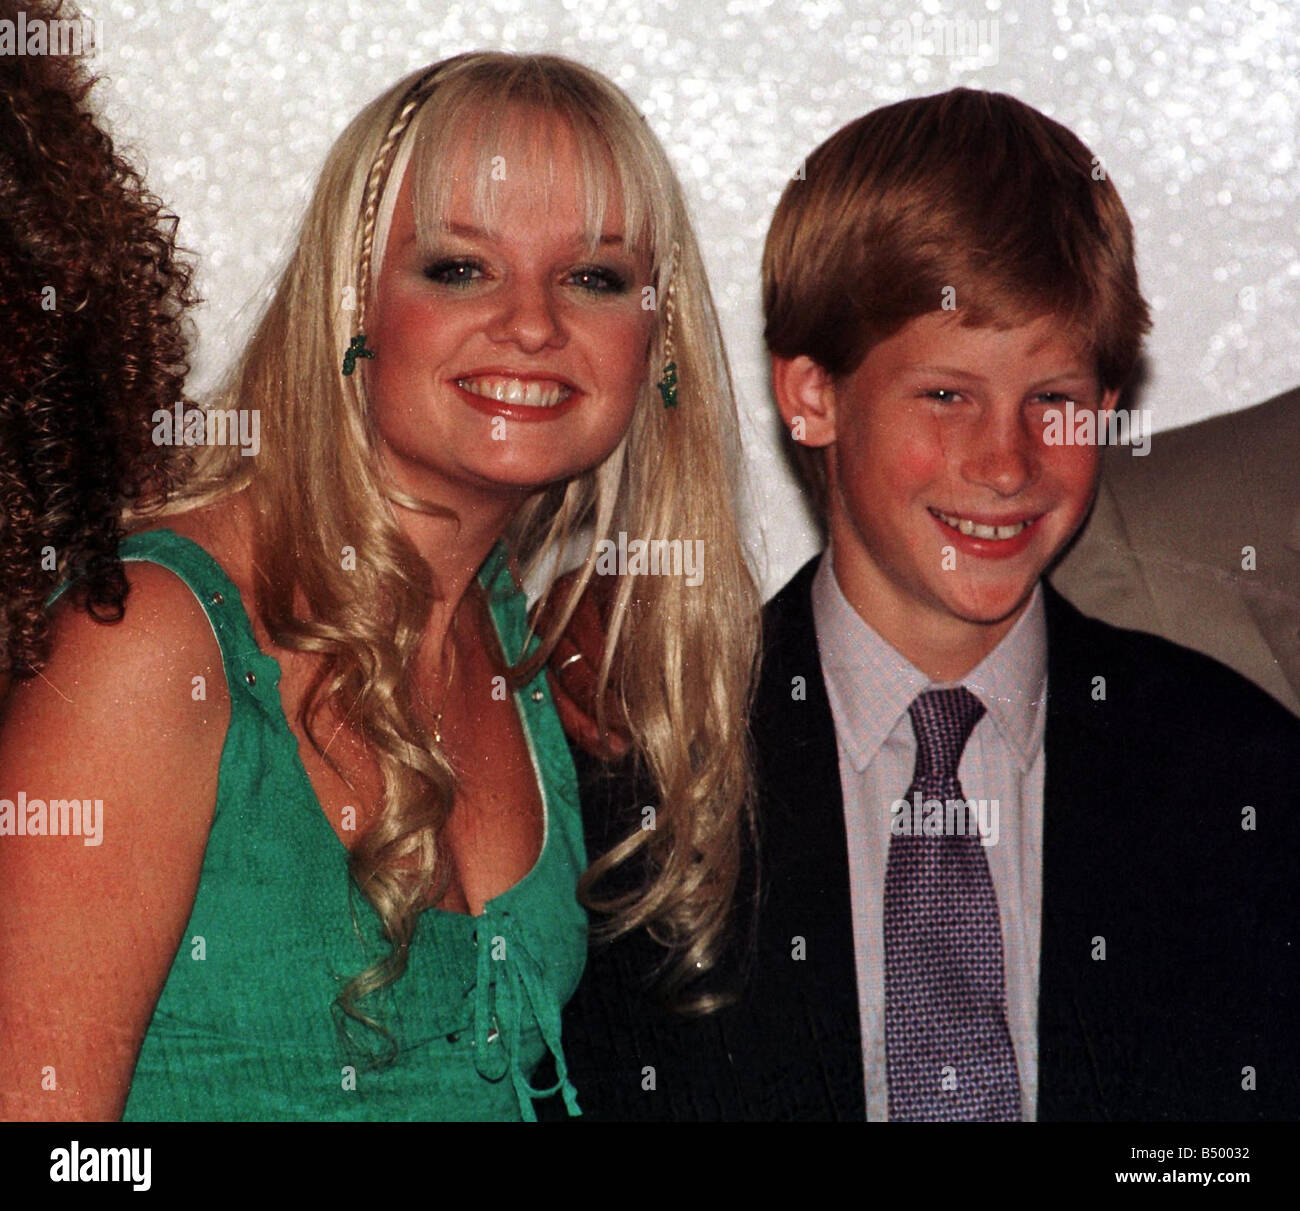 Prince Harry With Spice Girl Baby Spice November 1997